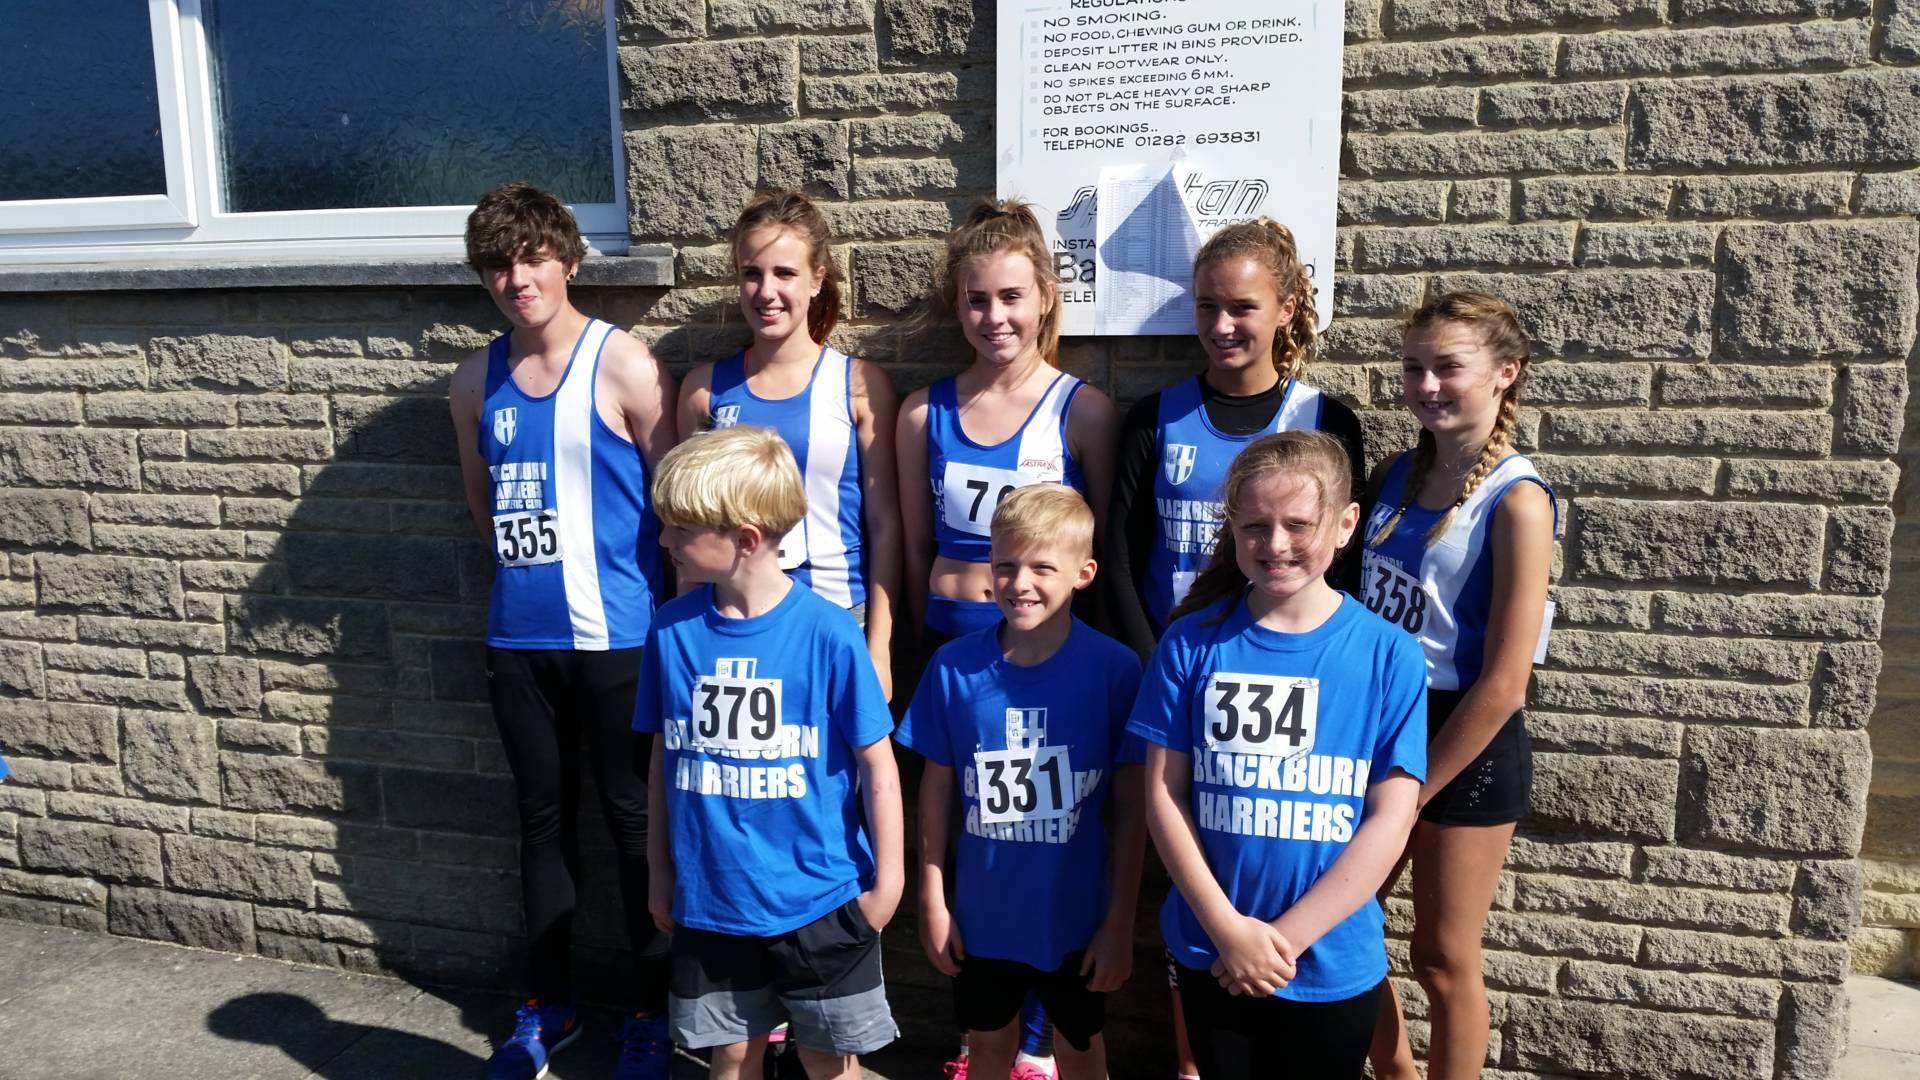 Great performances resulting in Club Records, Meeting Records, Personal Bests for Harriers from U13 through to Veterans